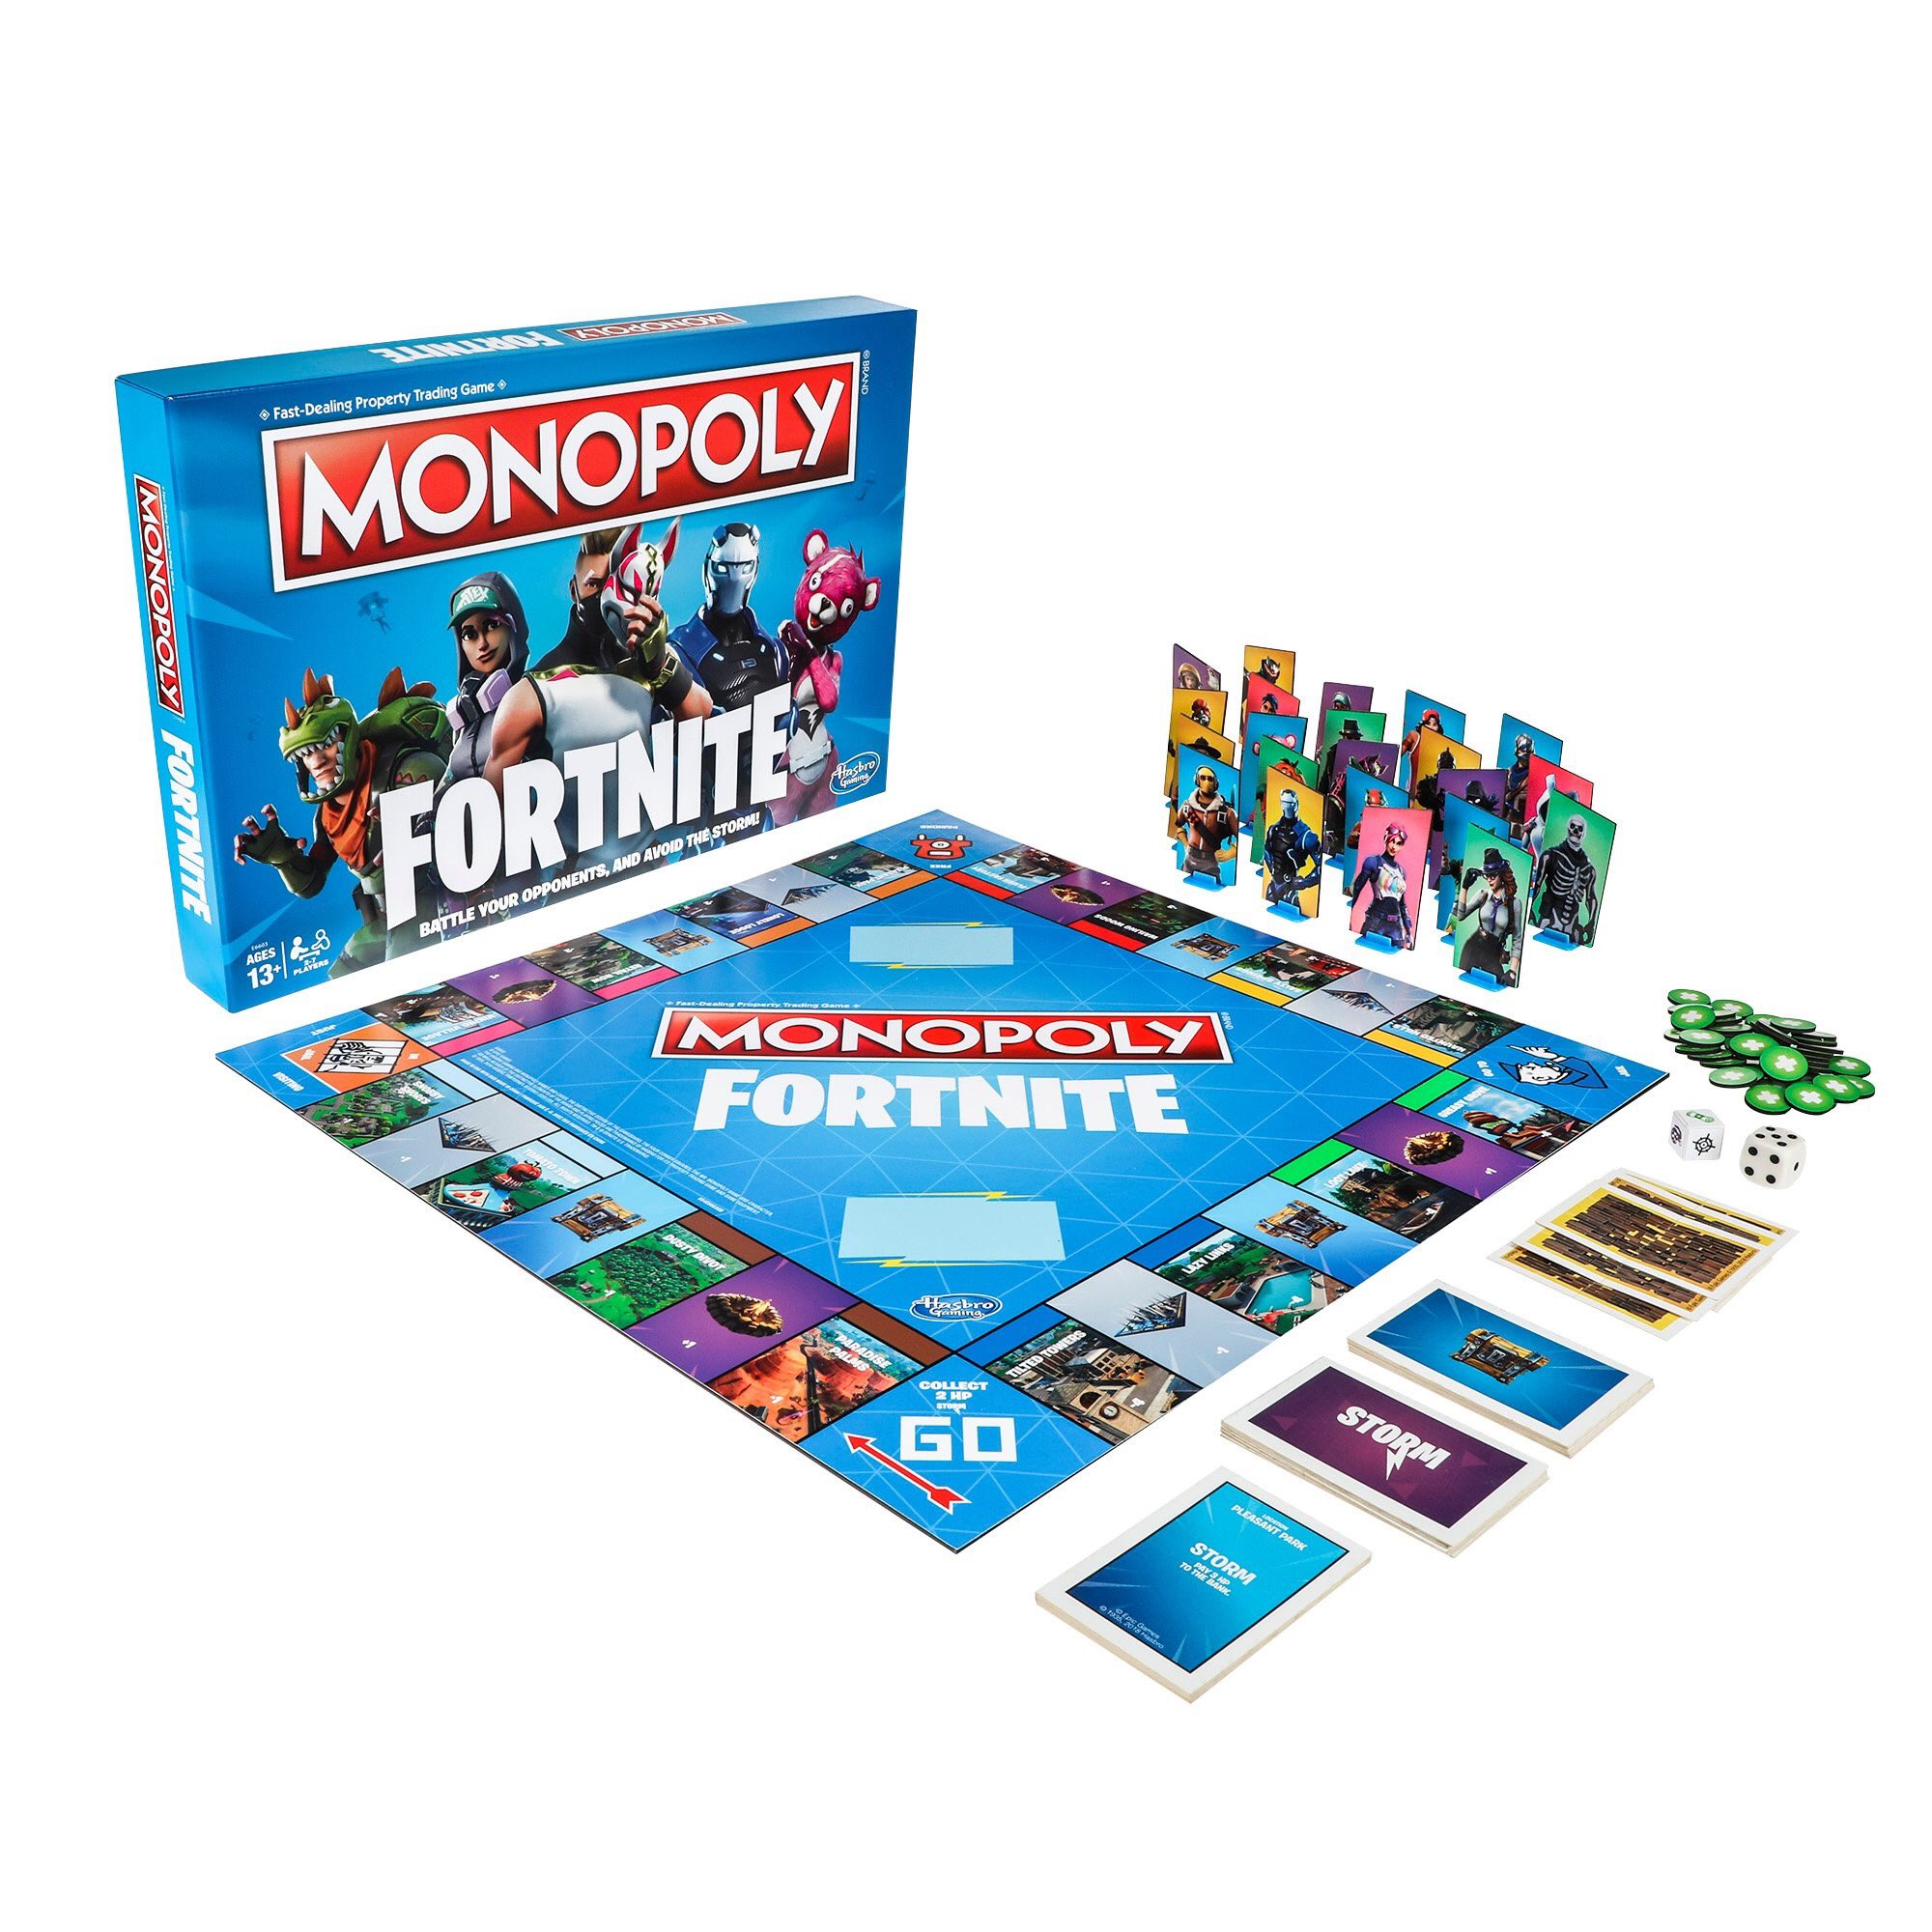 Fornite Monopoly is on the way, but we